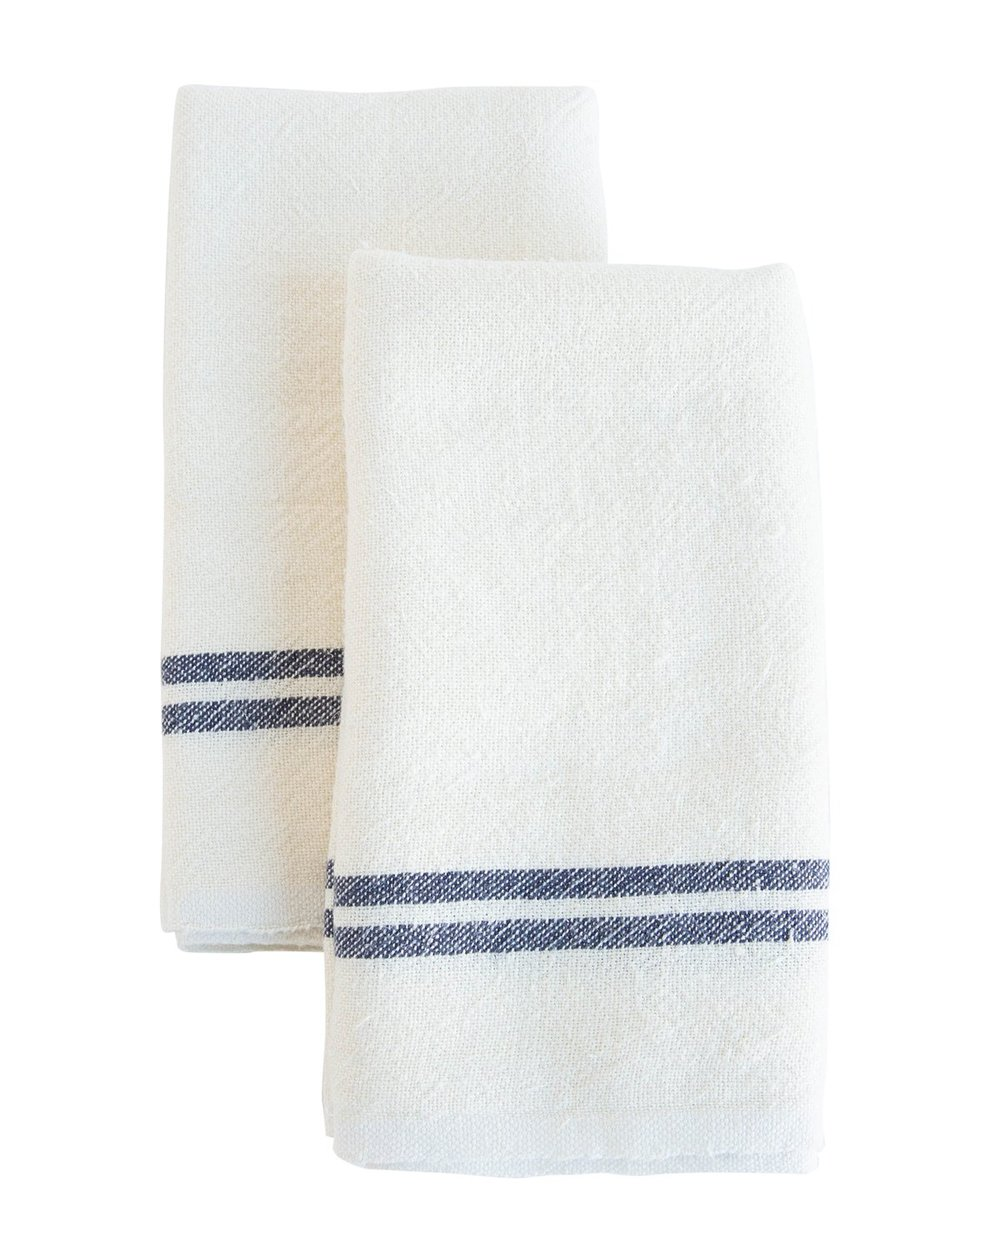 Townsend_Hand_Towels_1.jpg